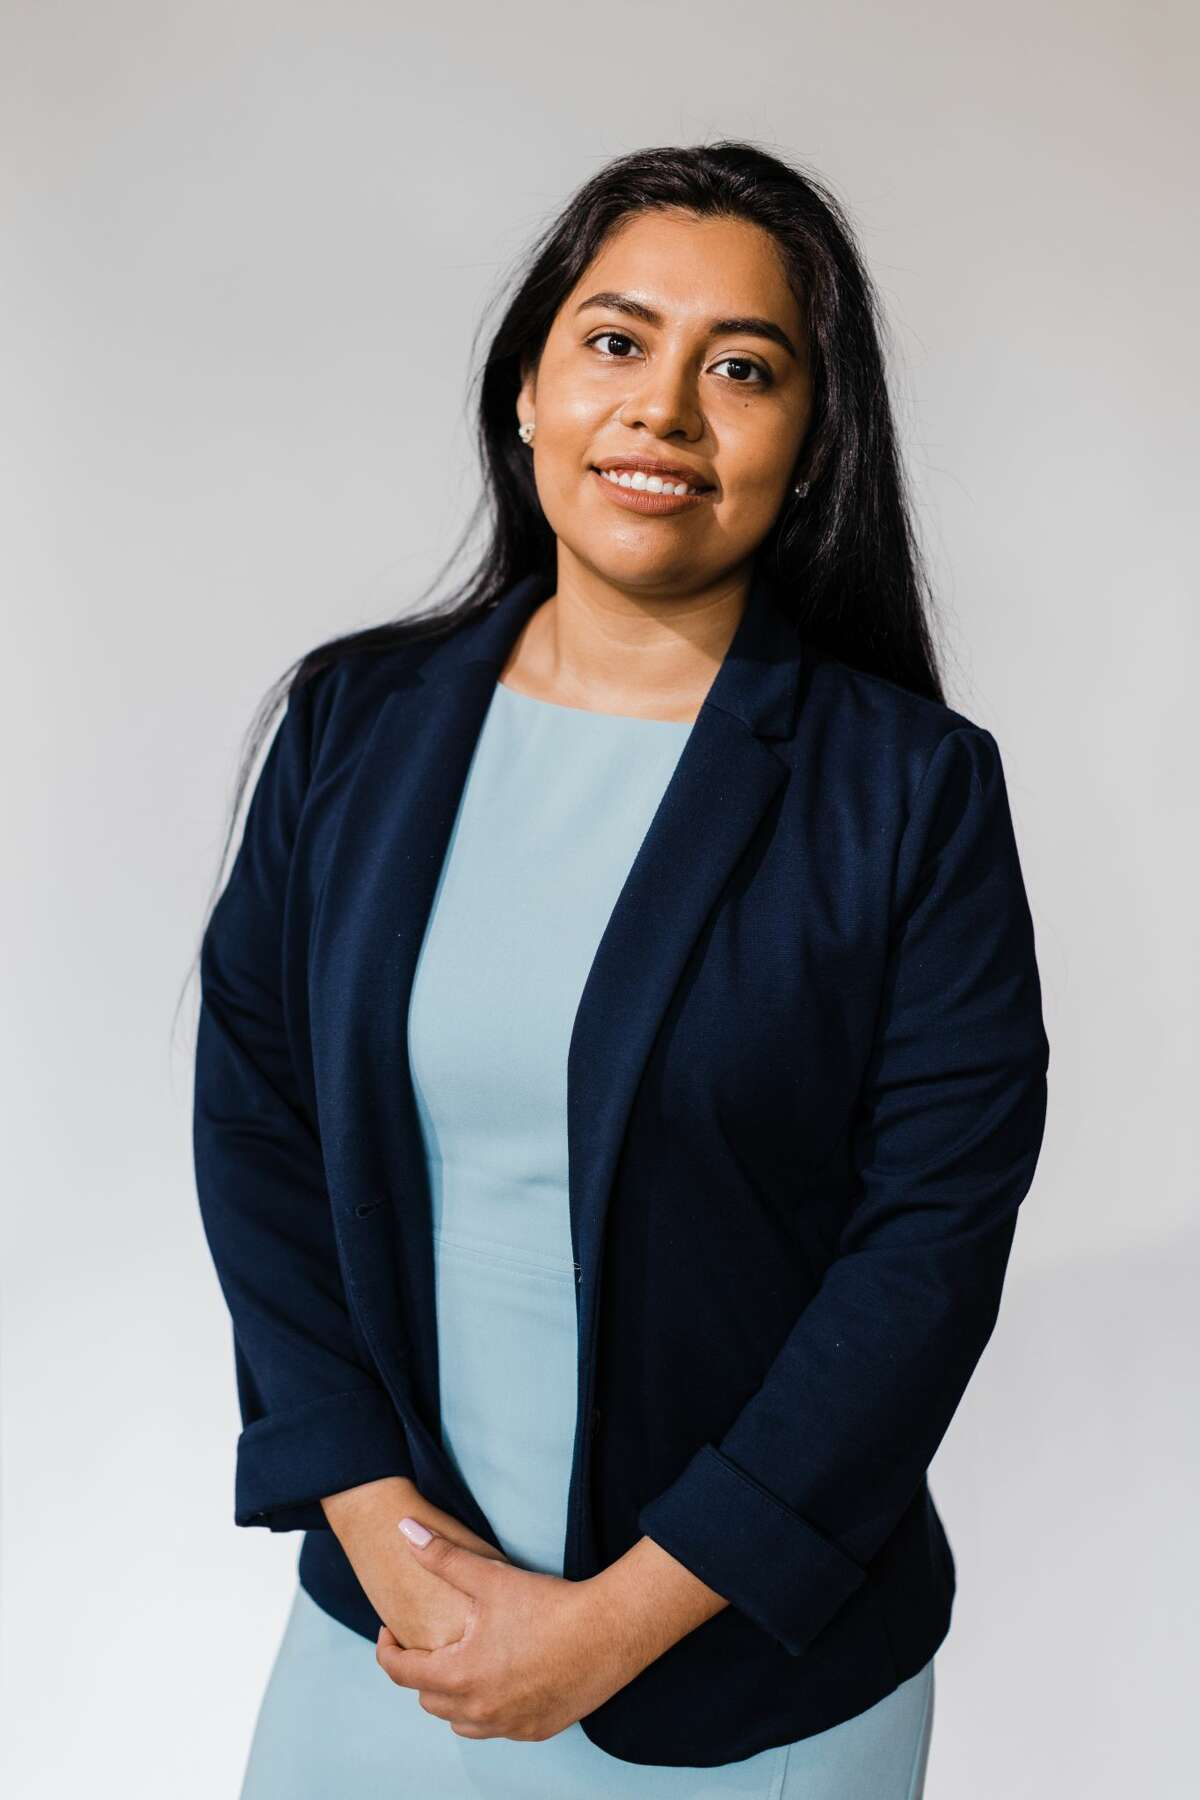 26-year-old Laredoan Jessica Cisneros has announced her bid for Congress. She will compete against long-time incumbent Henry Cuellar in the Democratic primaries. Click through the gallery to learn more about Cisneros.